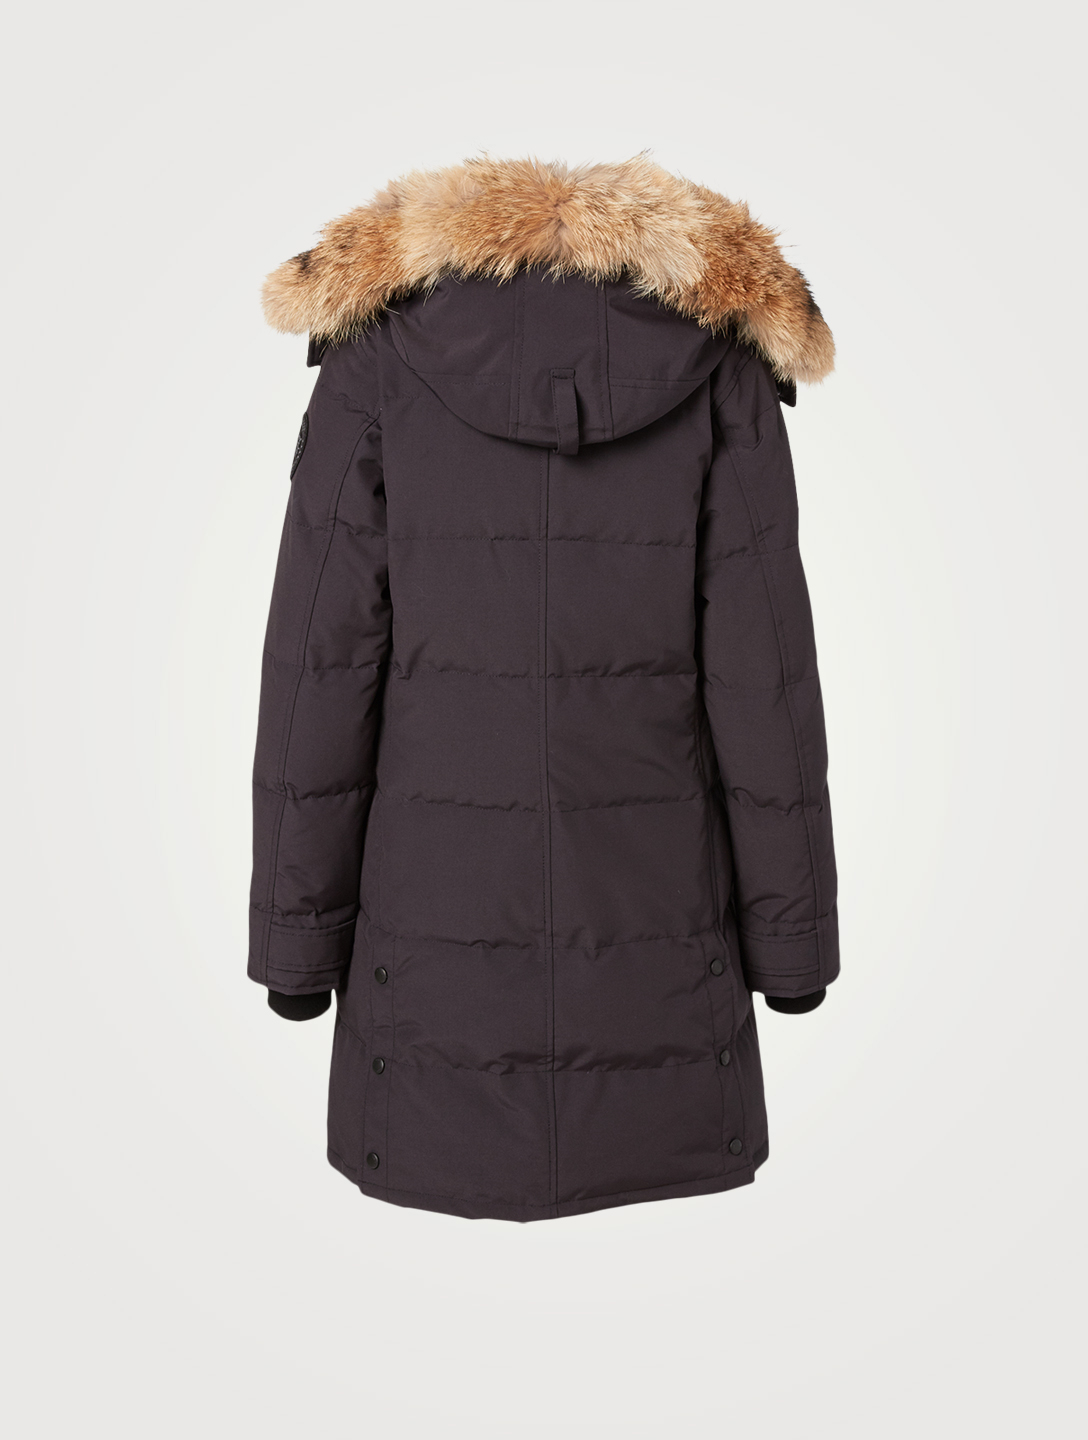 CANADA GOOSE Shelburne Black Label Down Parka With Fur Hood Women's Blue